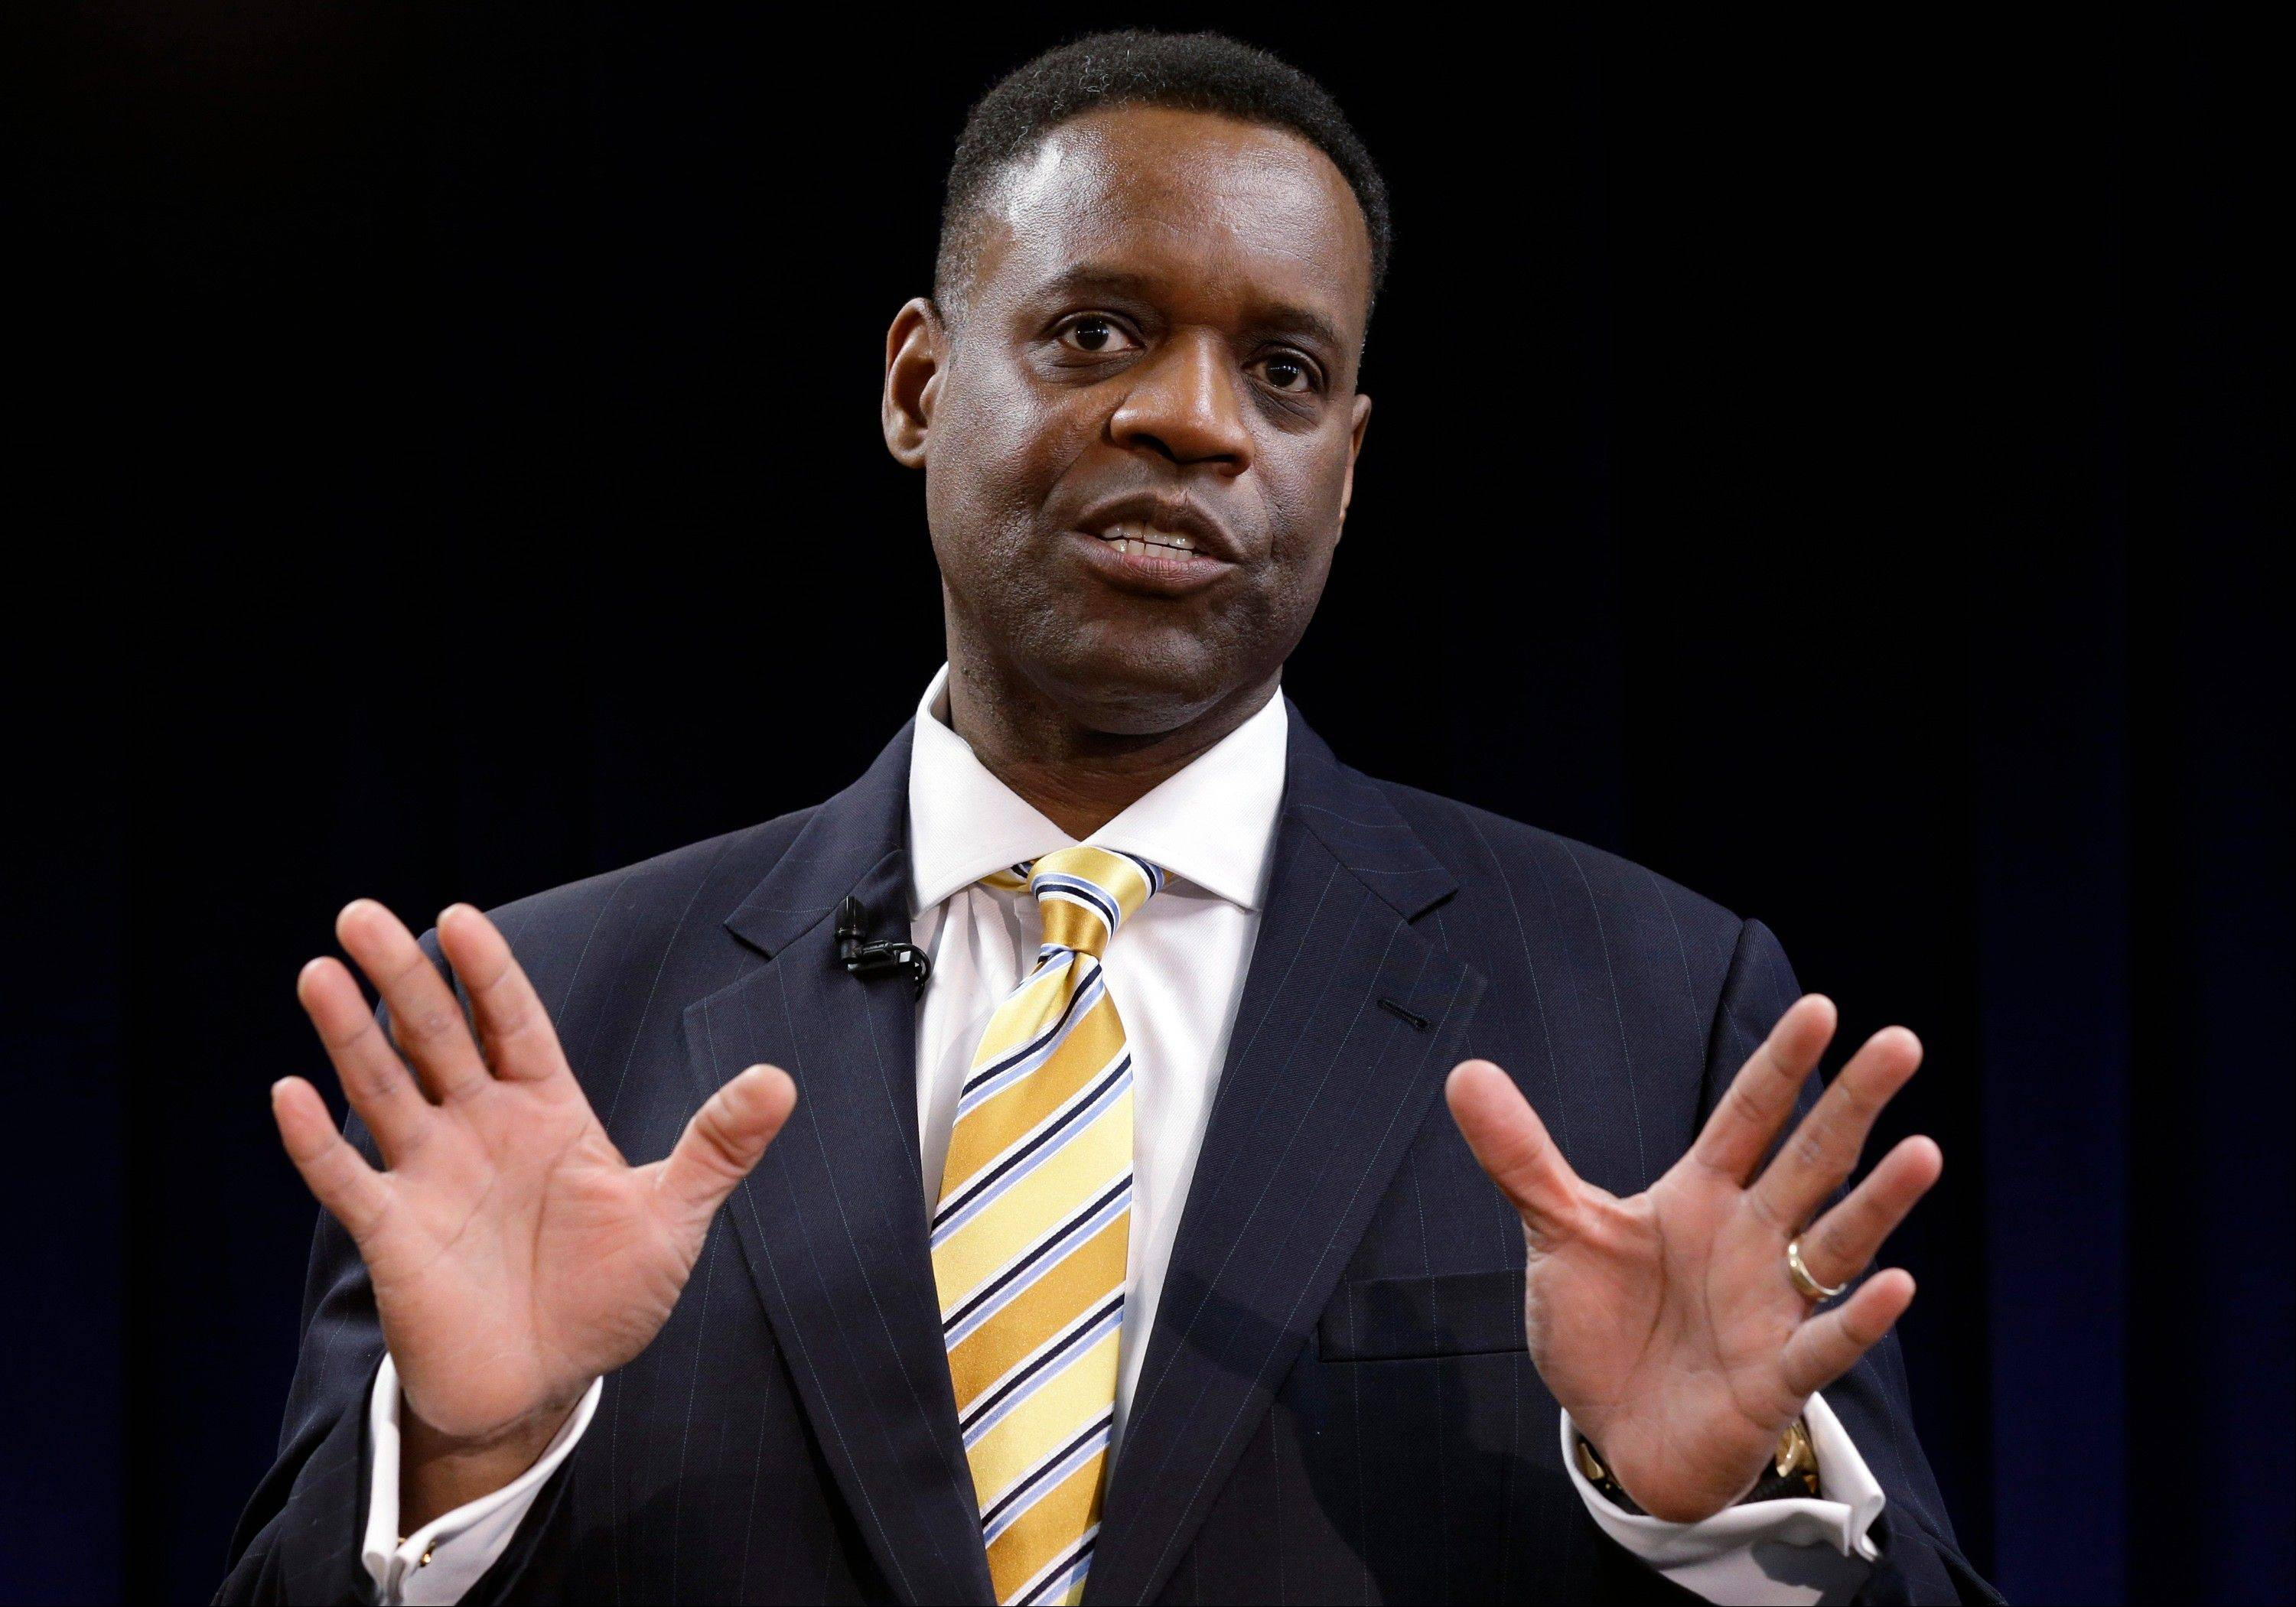 Washington-based attorney Kevyn Orr starts work Monday as Detroit�s emergency manager and the turnaround expert. He says his first tasks will be reviewing the city�s financial data and listening.